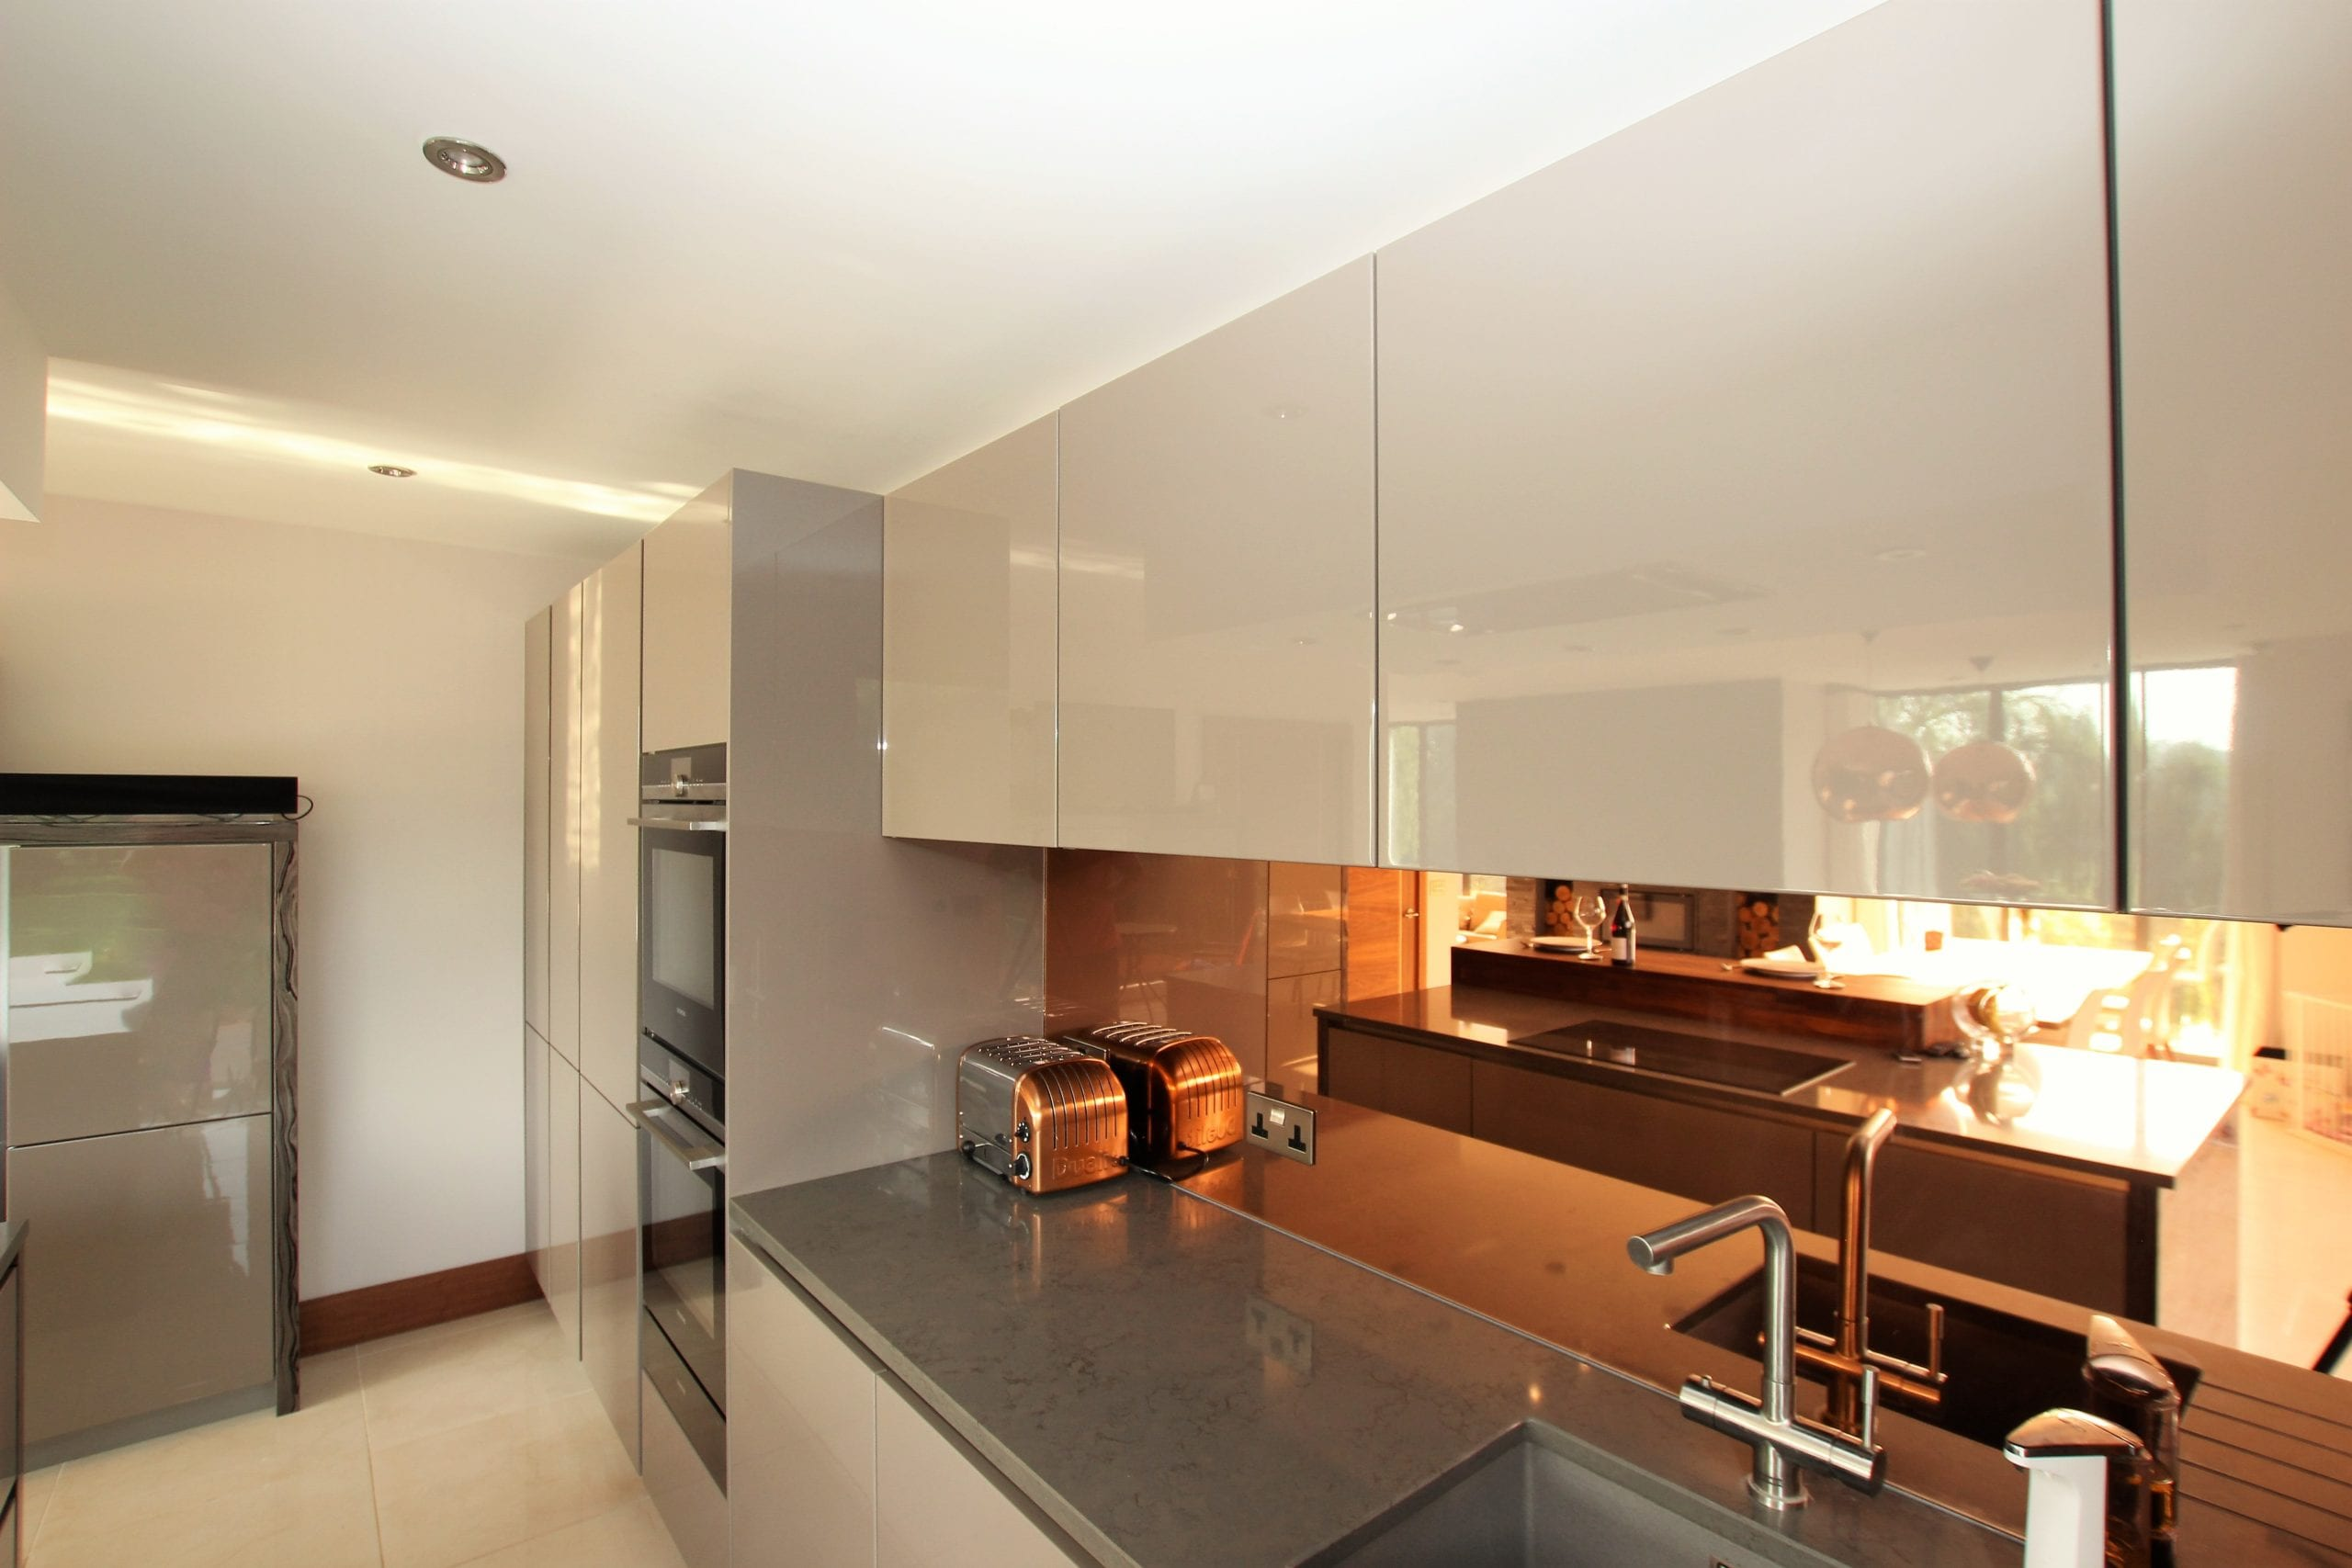 16. Bronze mirror splashback scaled | Qudaus Living, Sutton Coldfield